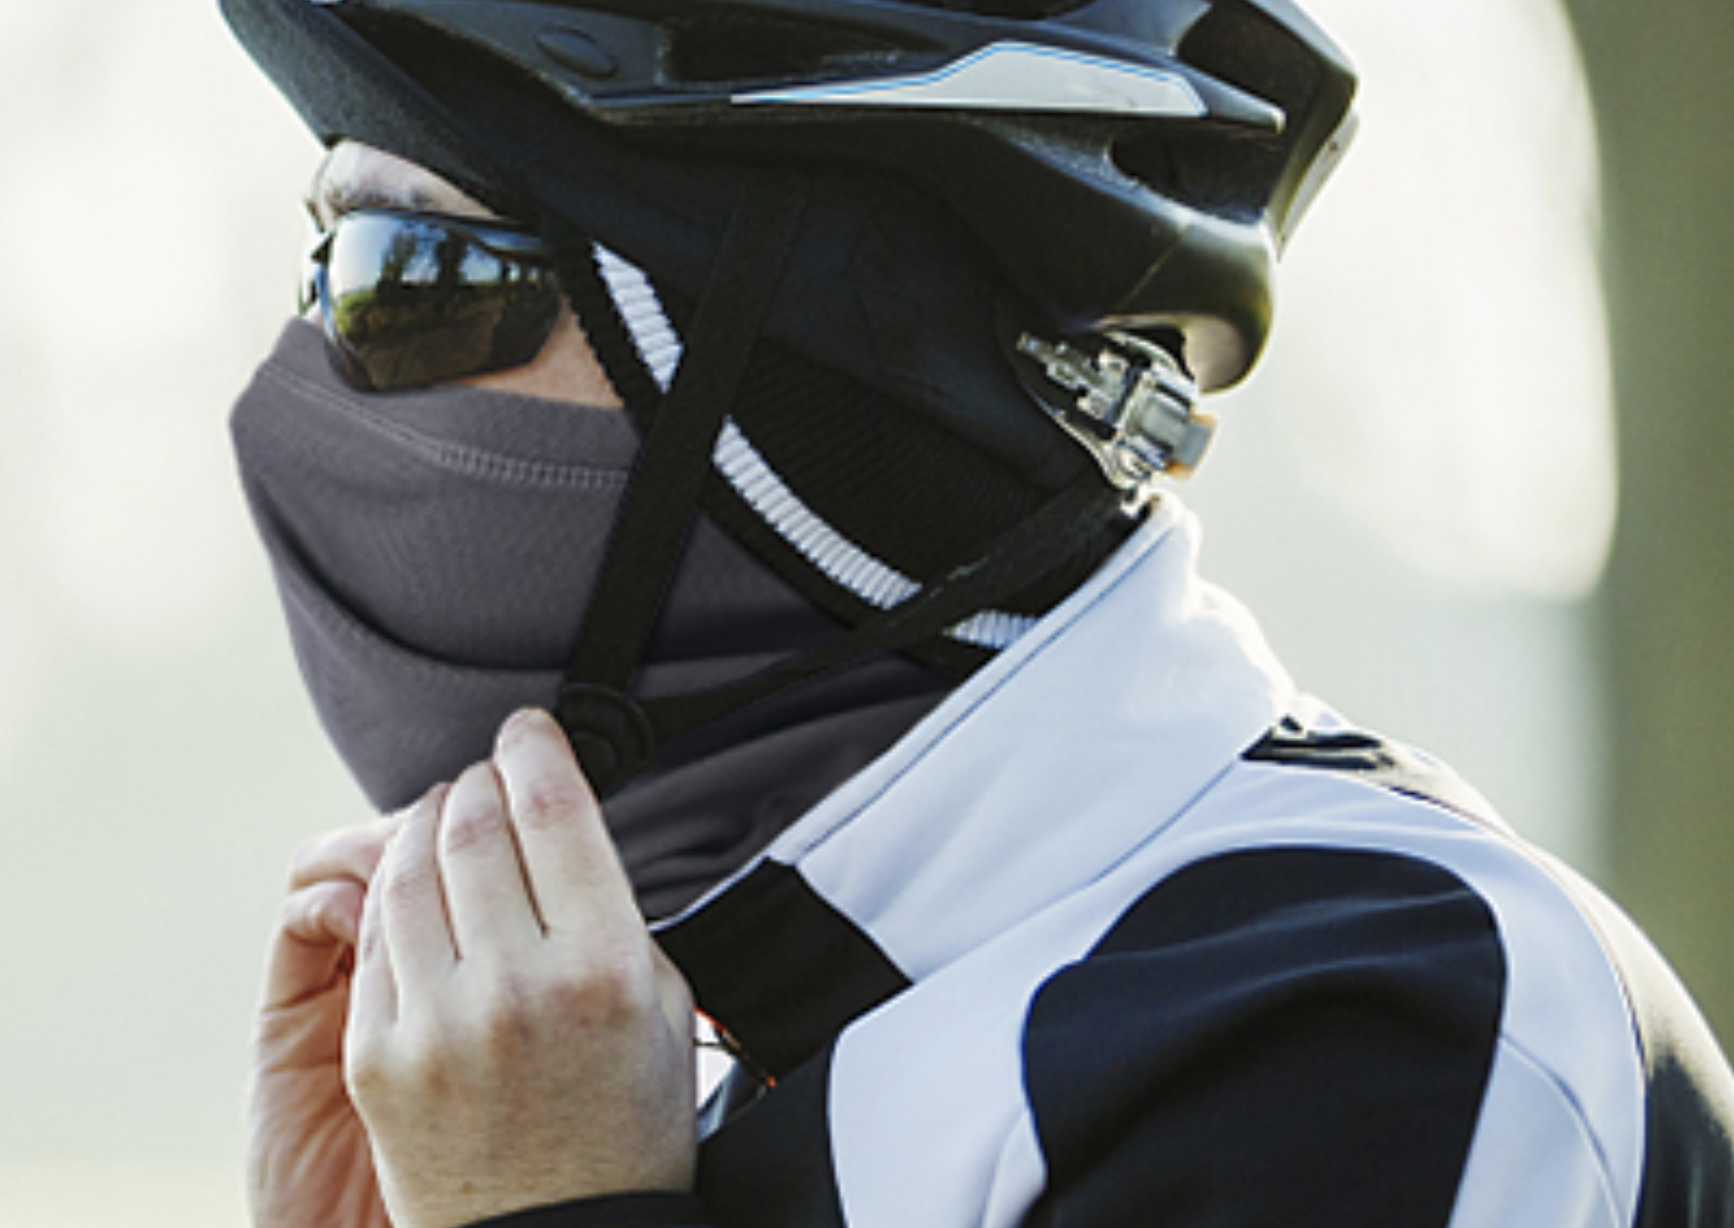 A model on a bike with a face covering on under their helmet